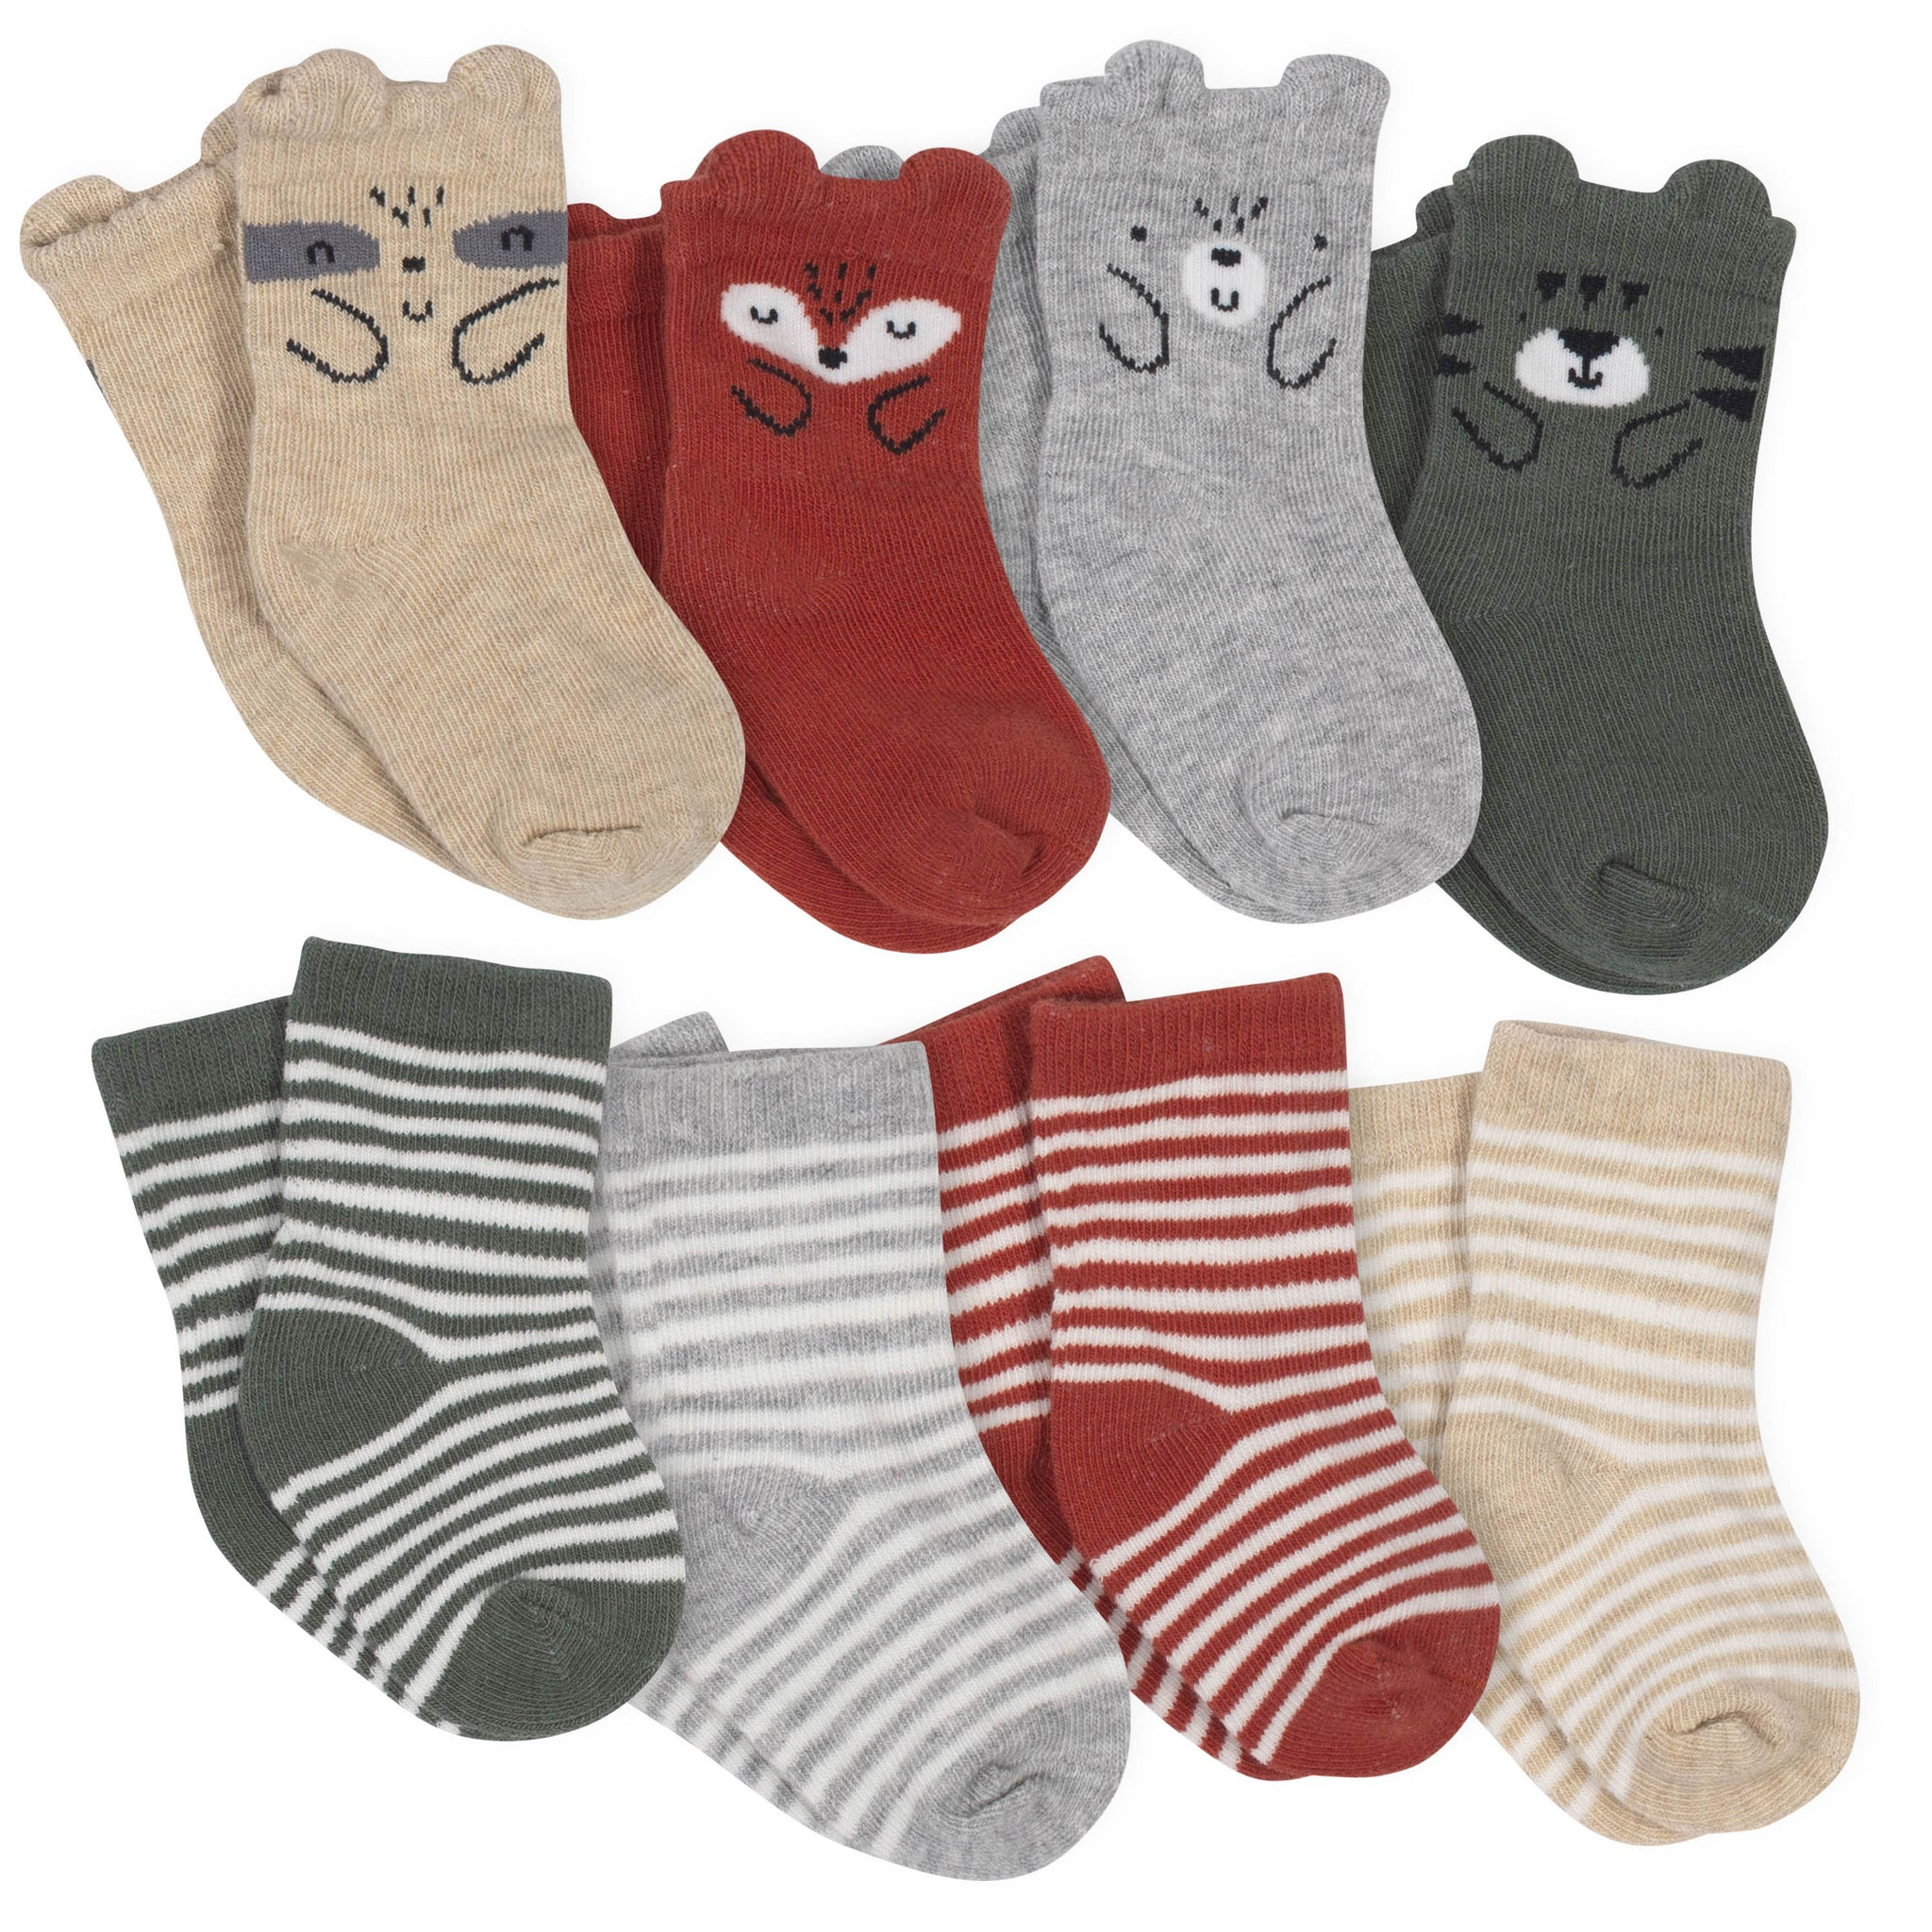 Boys' 8-Pack Wiggle Proof Jersey Crew Socks - Animals